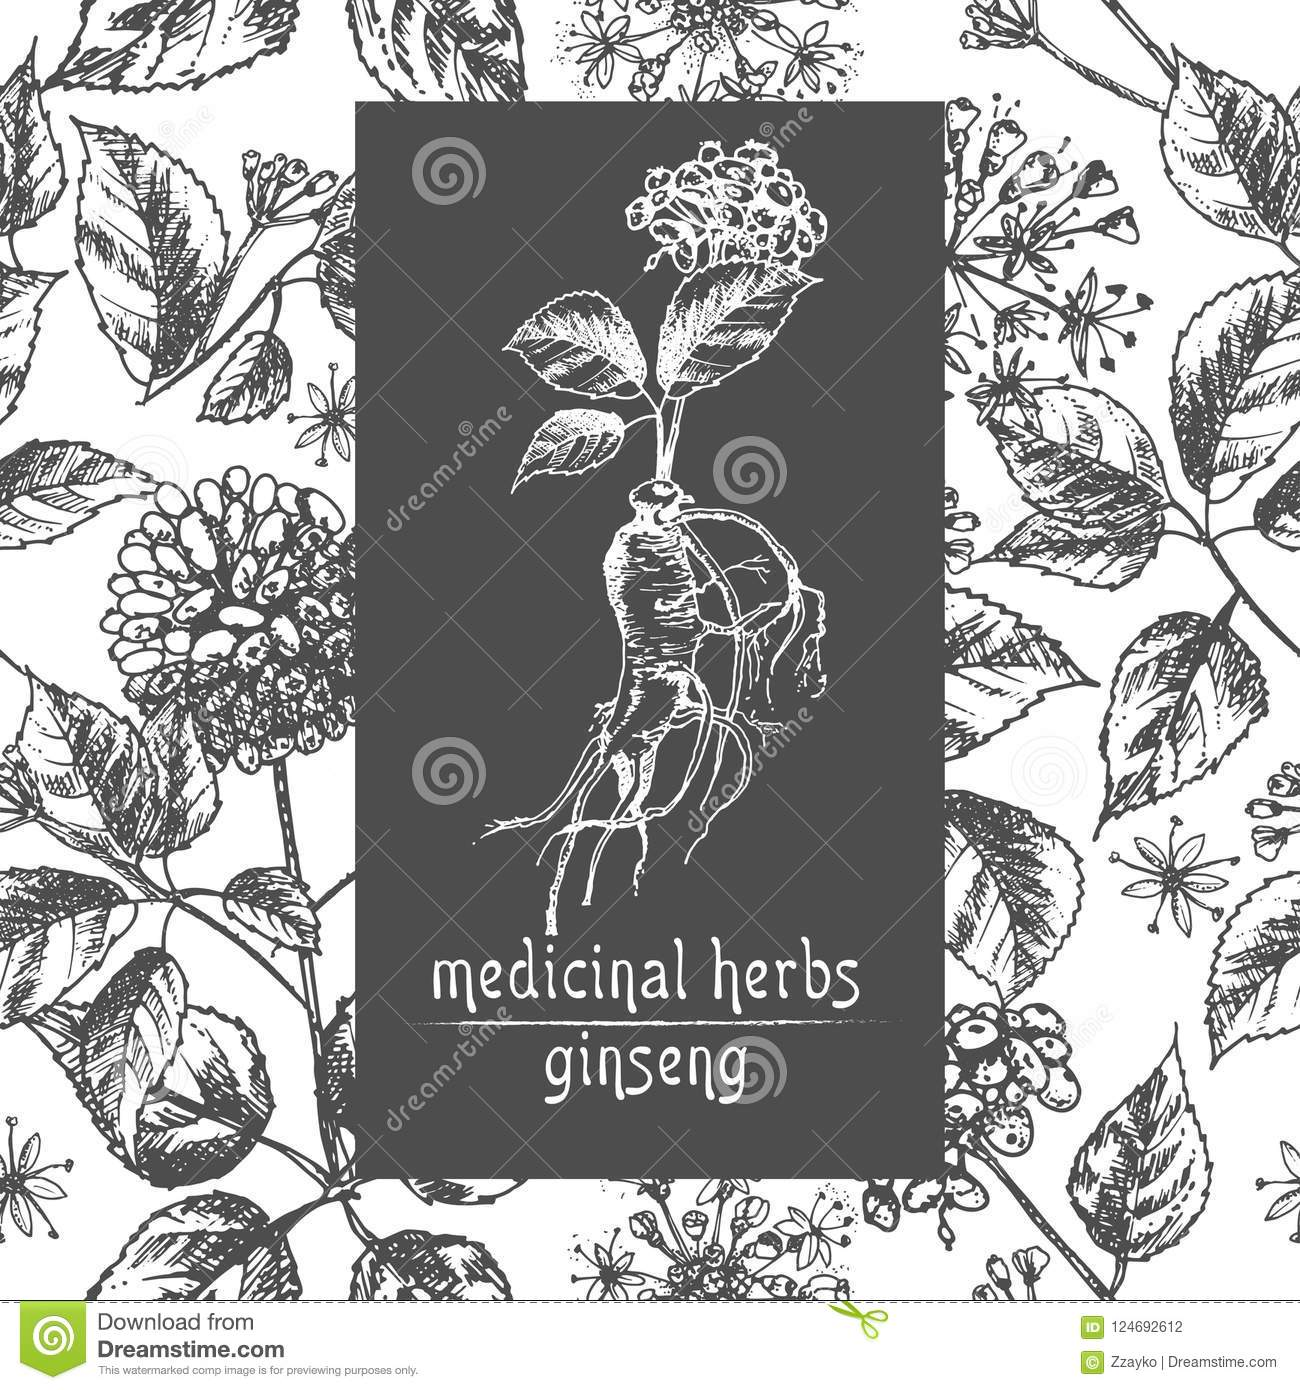 Realistic Botanical Ink Sketch Of Ginseng Root Flowers And Berries